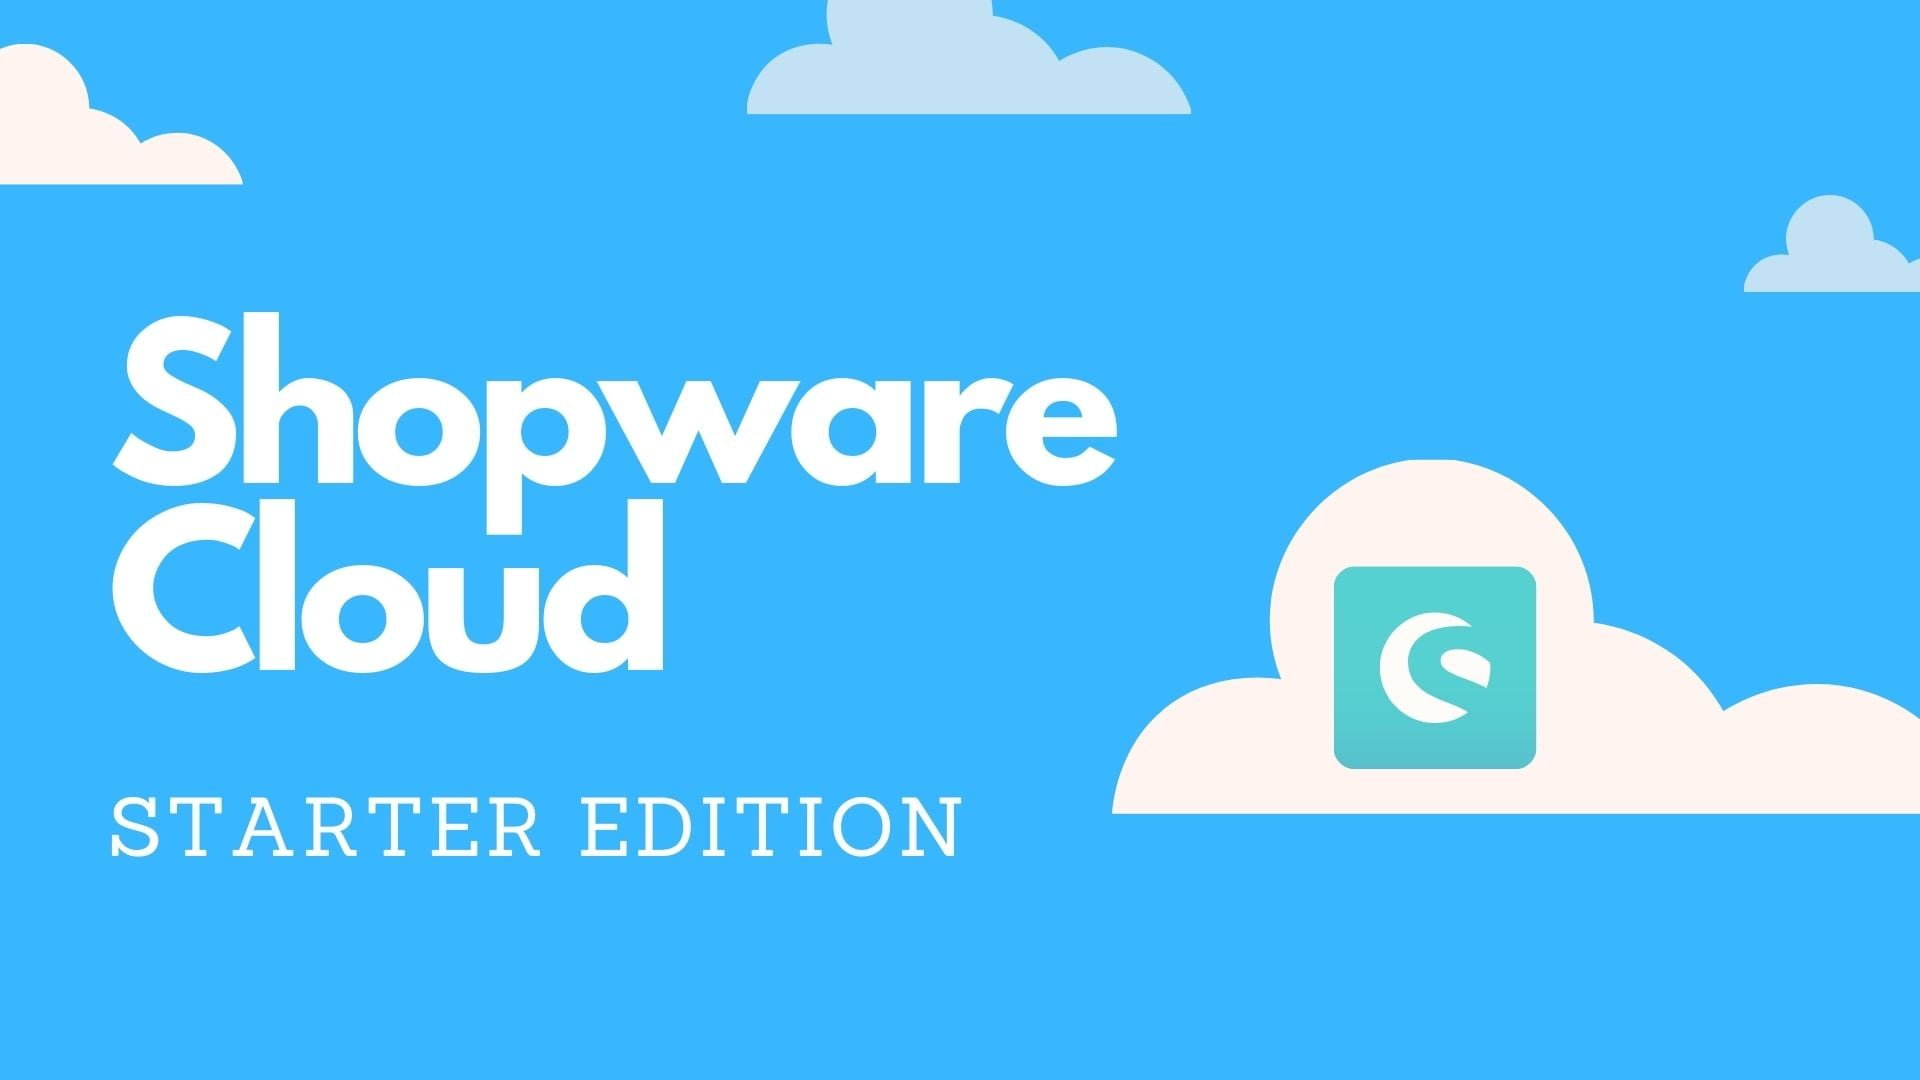 Shopware clous starter edition